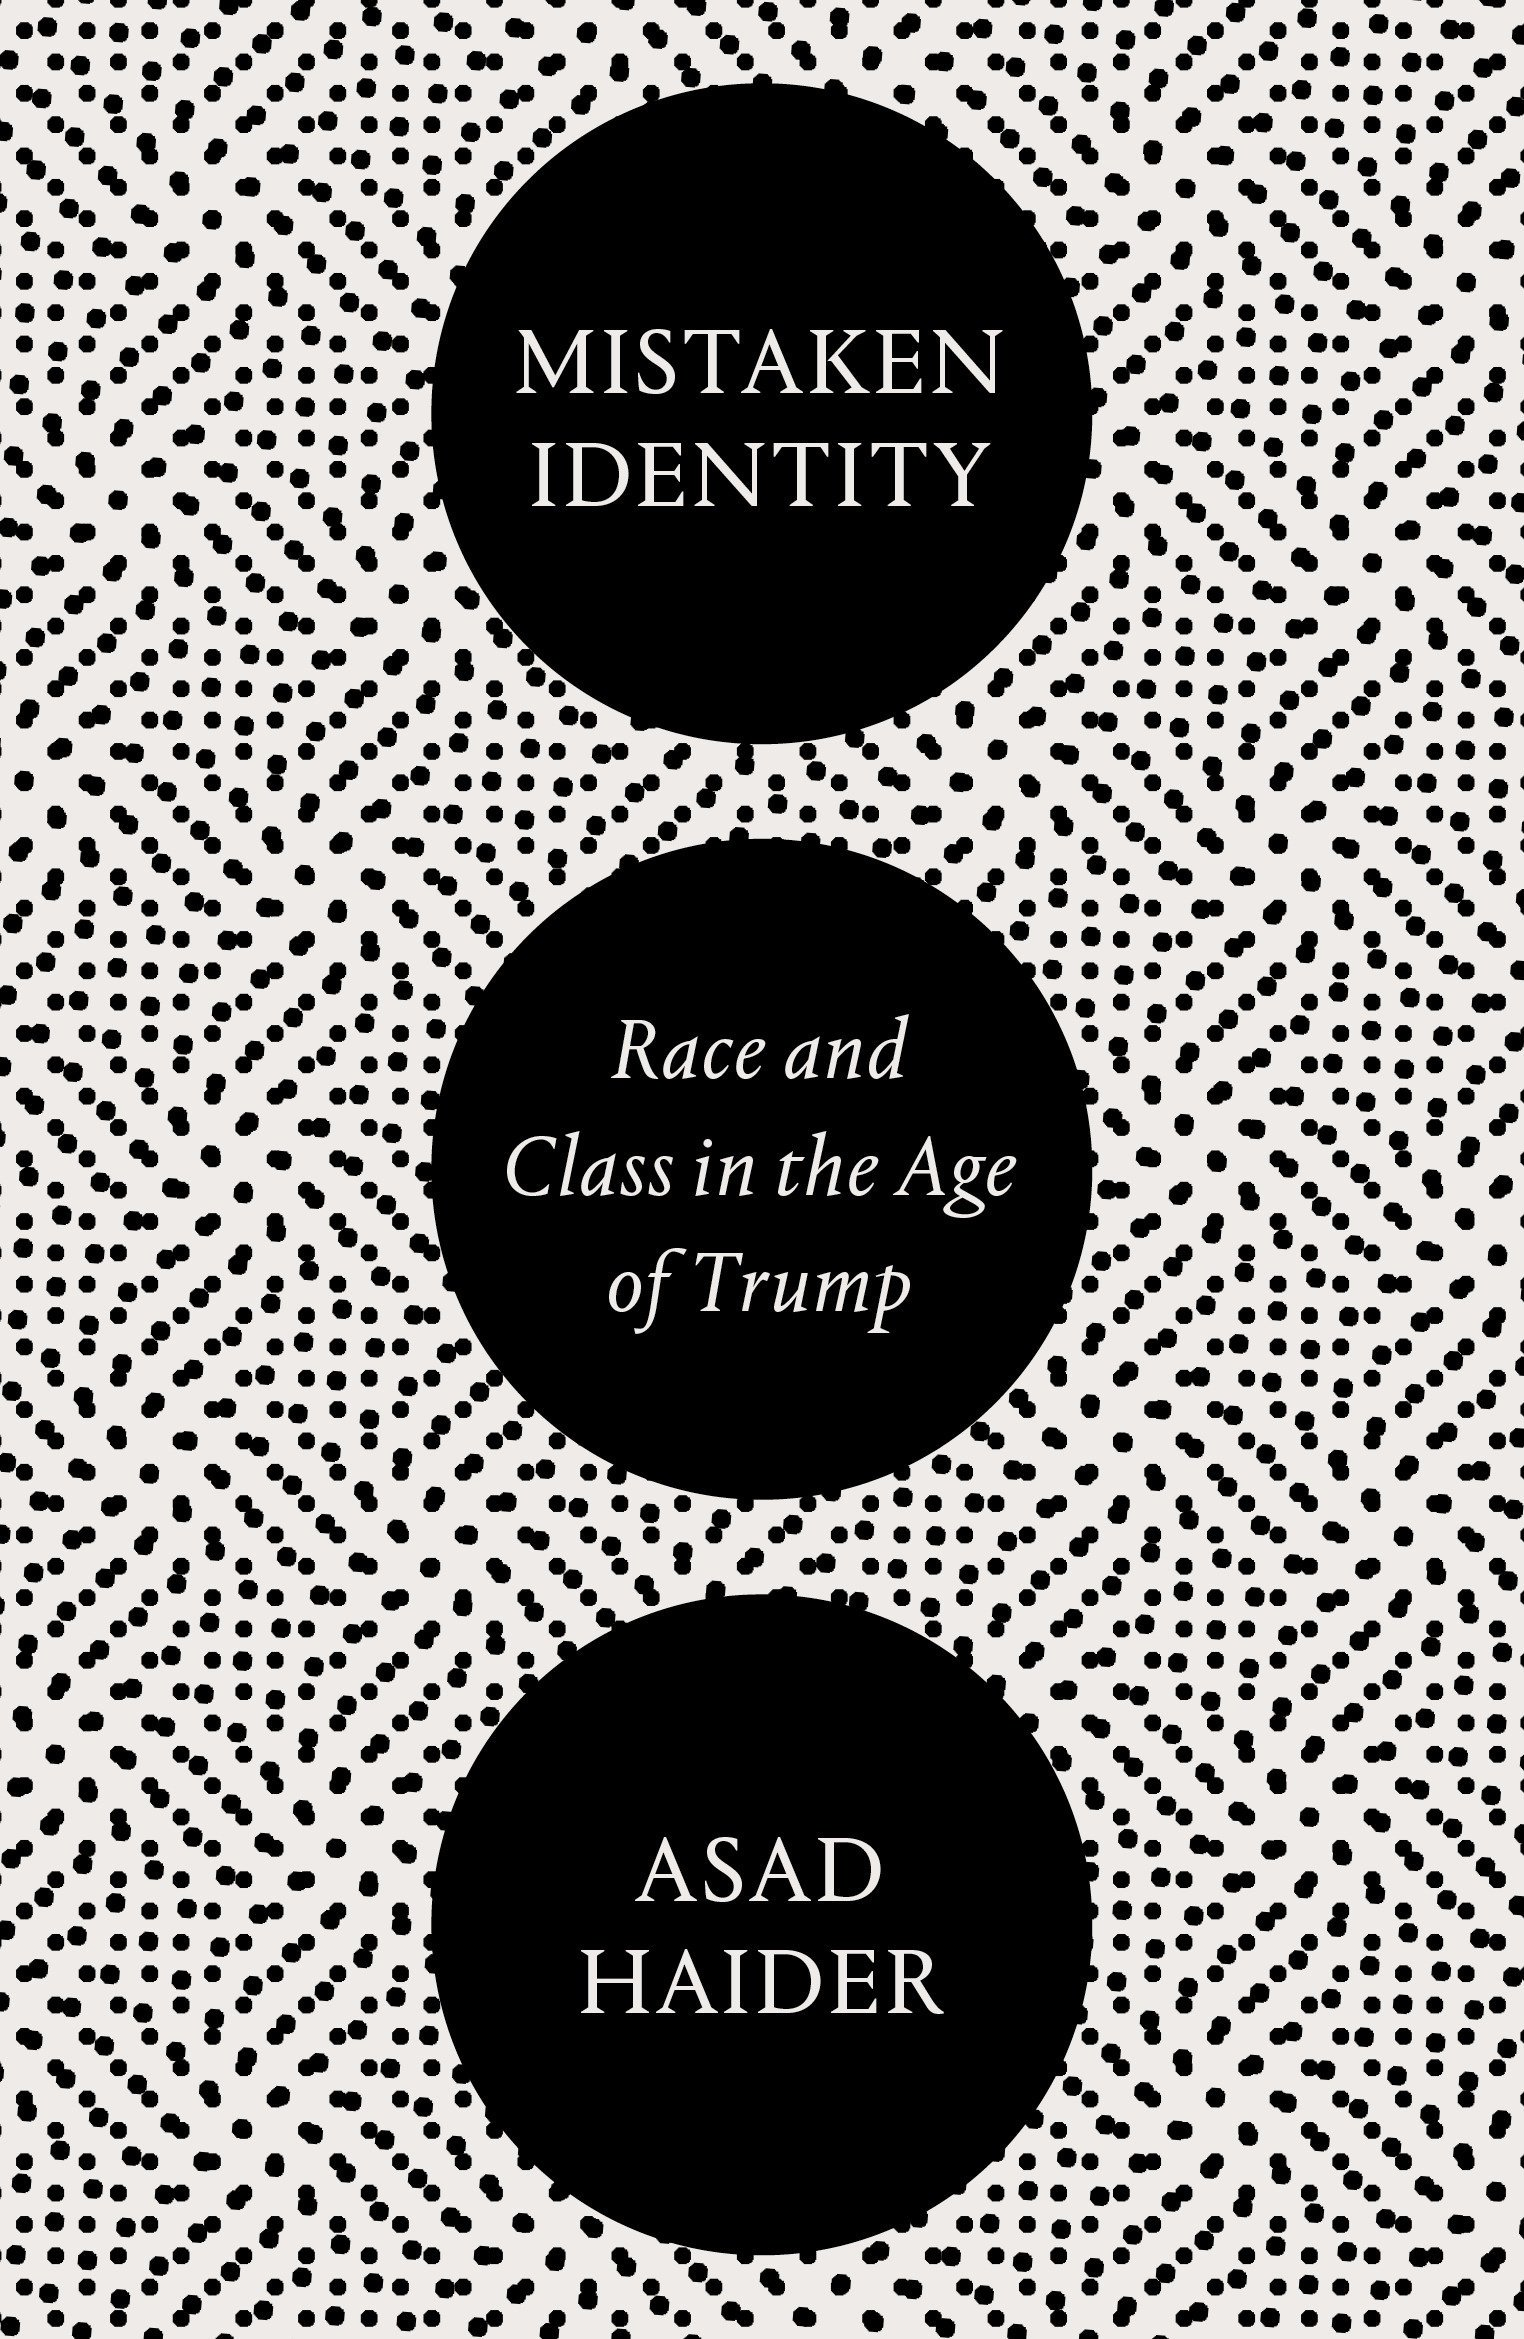 High School Essay Format Mistaken Identity Race And Class In The Age Of Trump Amazoncouk Asad  Haider  Books English Essay Topics For College Students also Reflective Essay On English Class Mistaken Identity Race And Class In The Age Of Trump Amazoncouk  Science Technology Essay